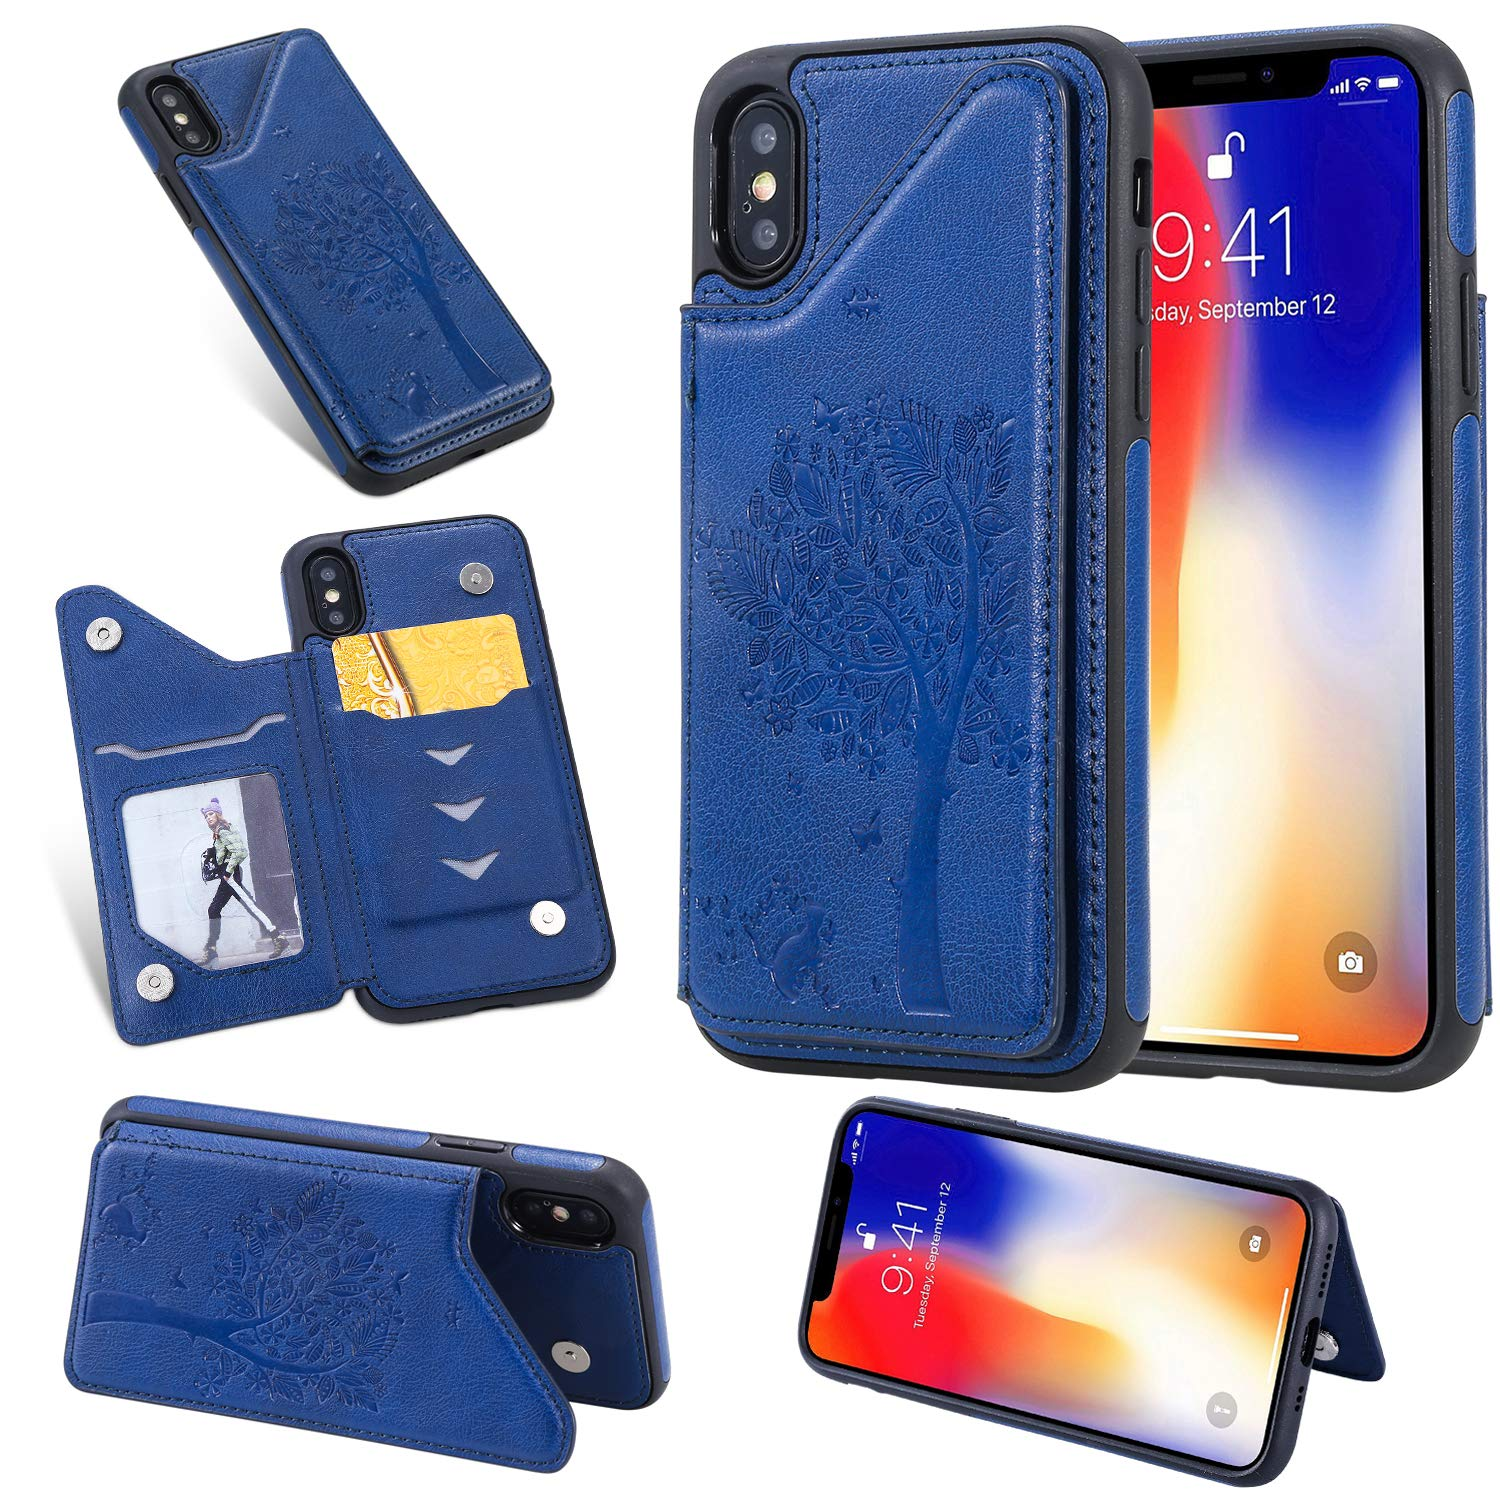 Tznzxm iPhone Xs Case,iPhone X Case, Fashion Tree Cat PU Leather Kickstand Card Slots Double Magnetic Clasp Durable Shockproof Soft TPU Back Wallet Flip Cover for iPhone X/iPhone Xs Blue by Tznzxm